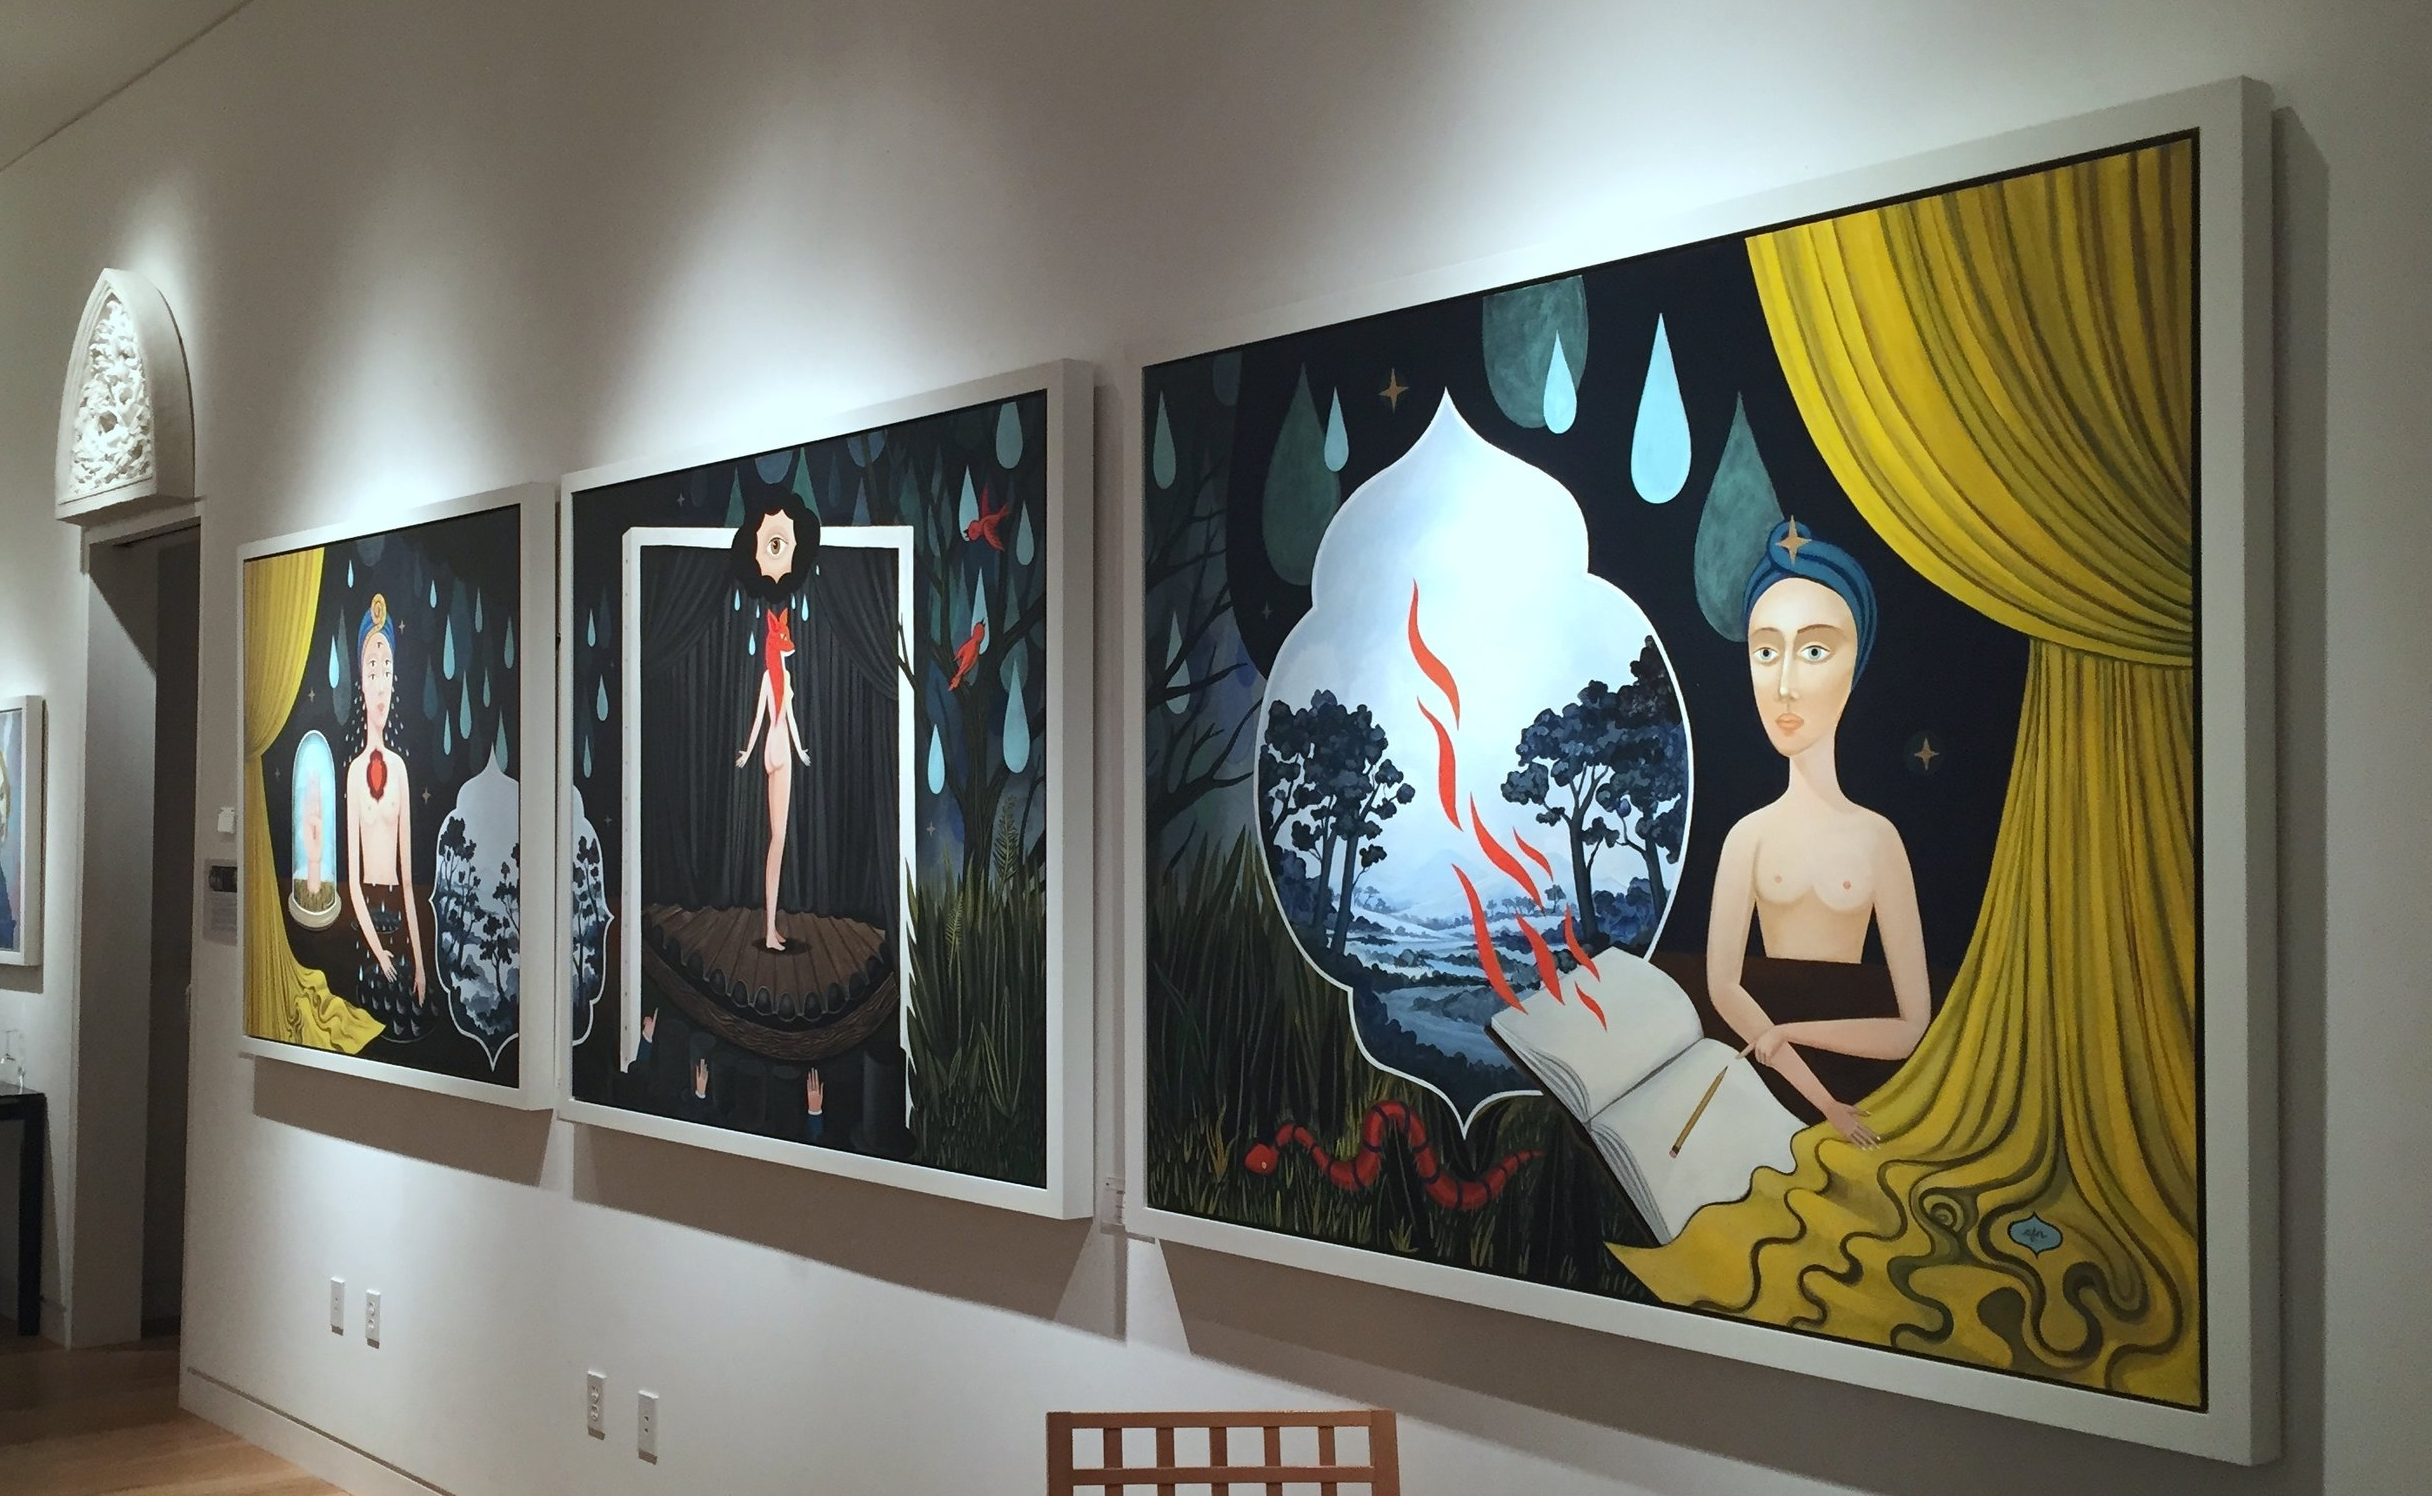 Pageantry of Vision  by Anne Faith Nicholls at Martin Lawrence Galleries, South Coast Plaza